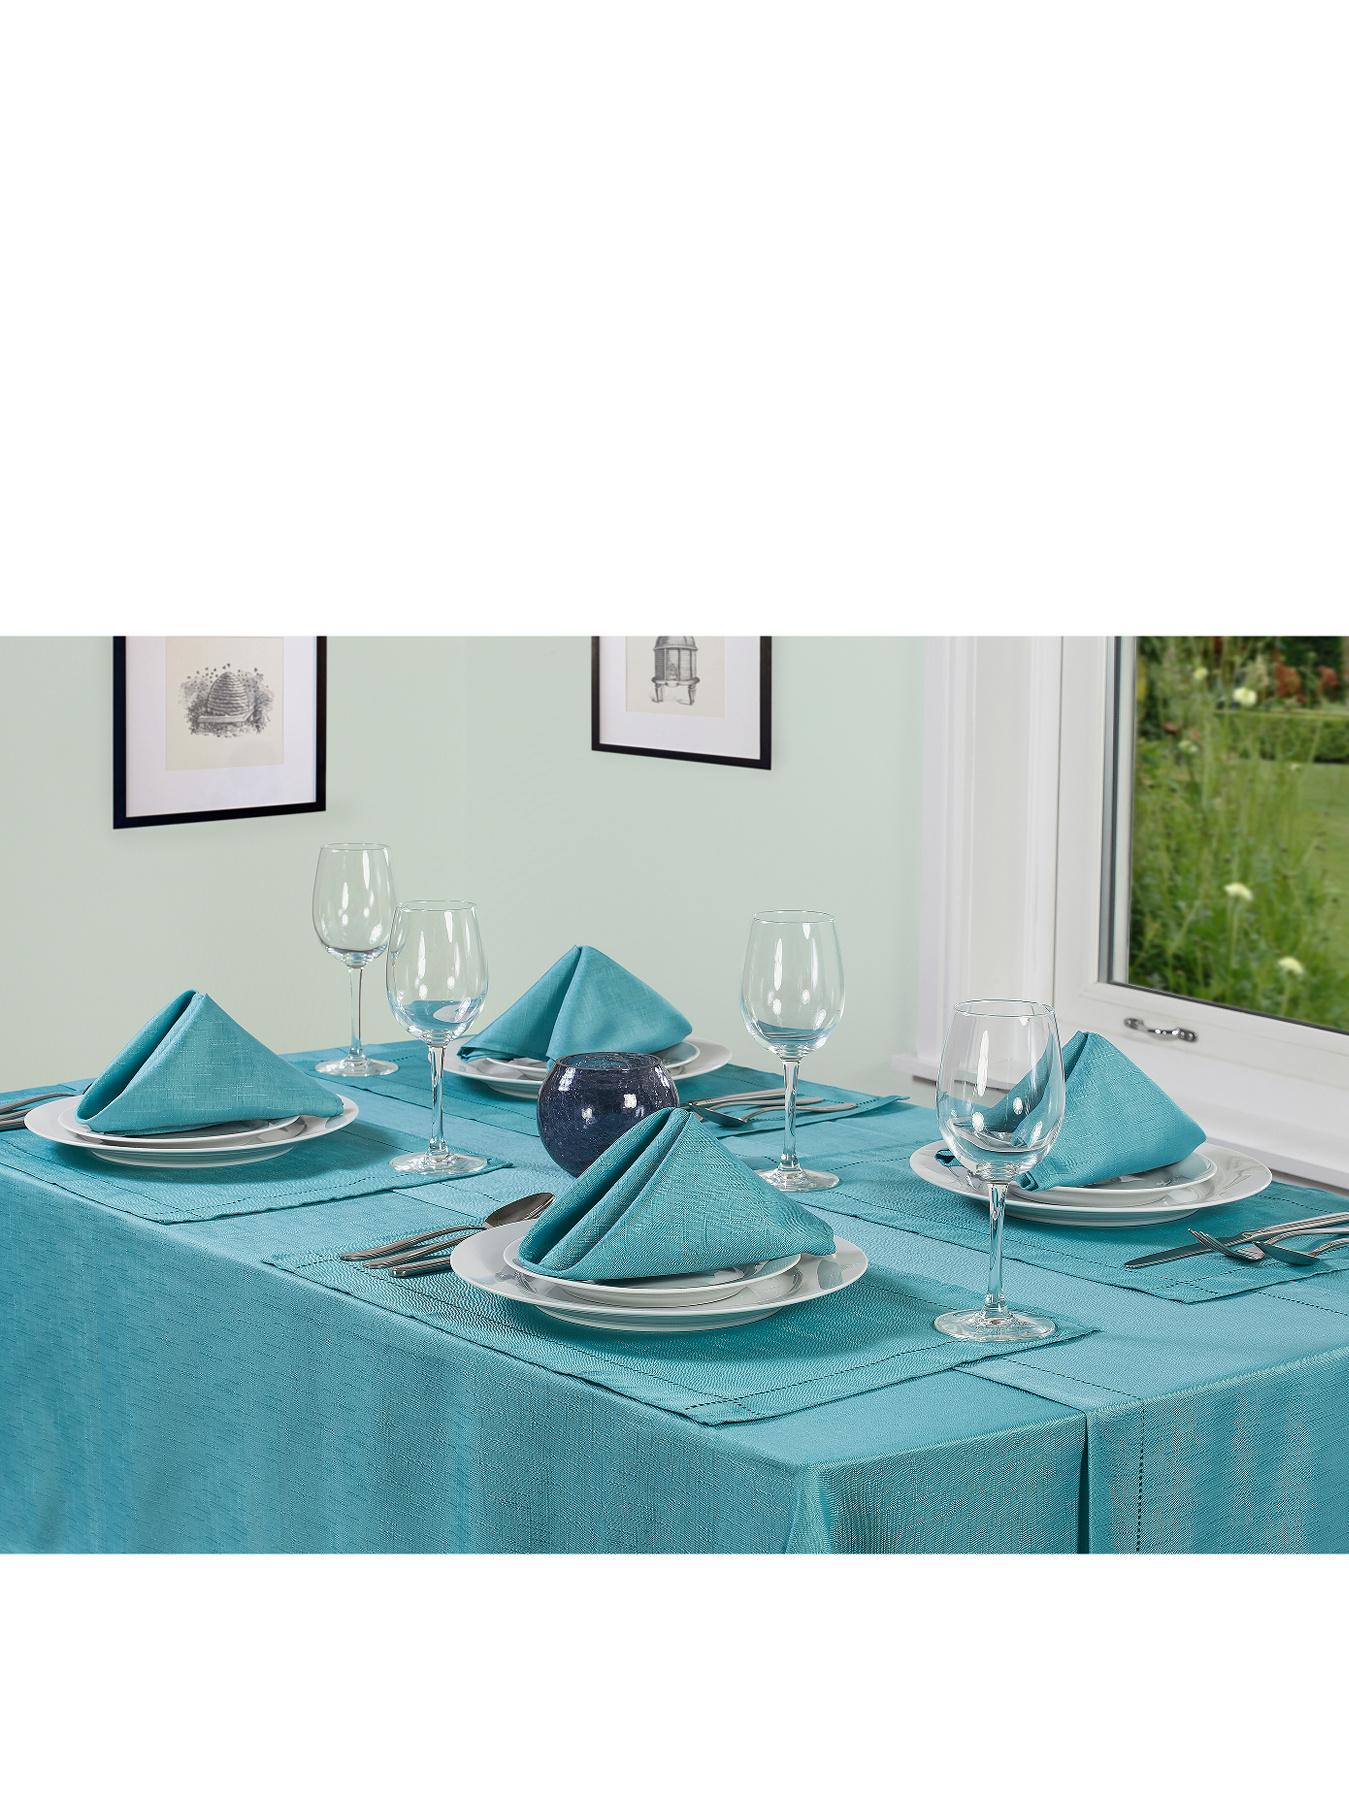 Linen Look Table Textile Set - Teal - Teal, Teal